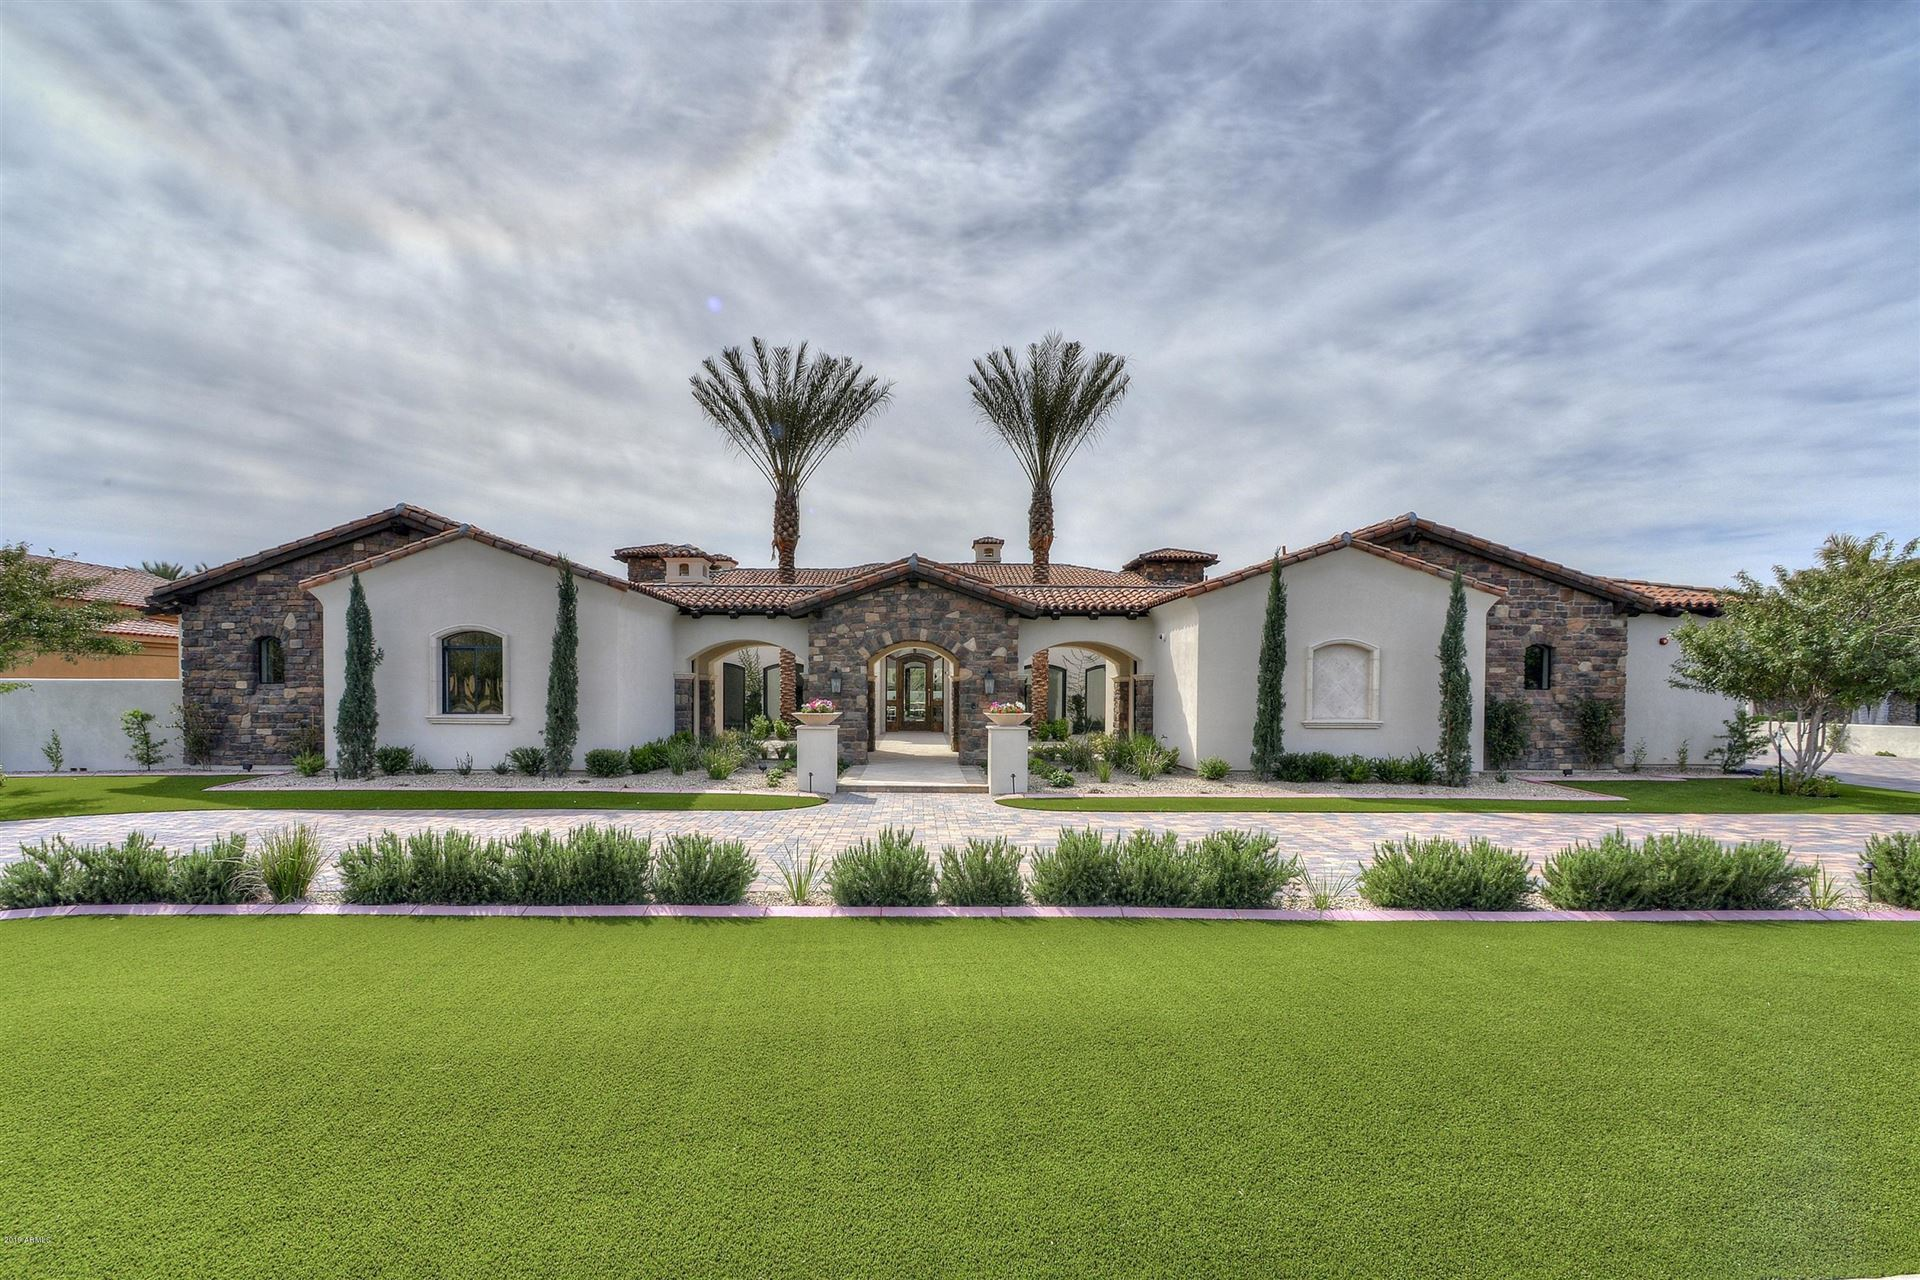 Property Image Of 8065 W Expedition Way In Peoria, Az